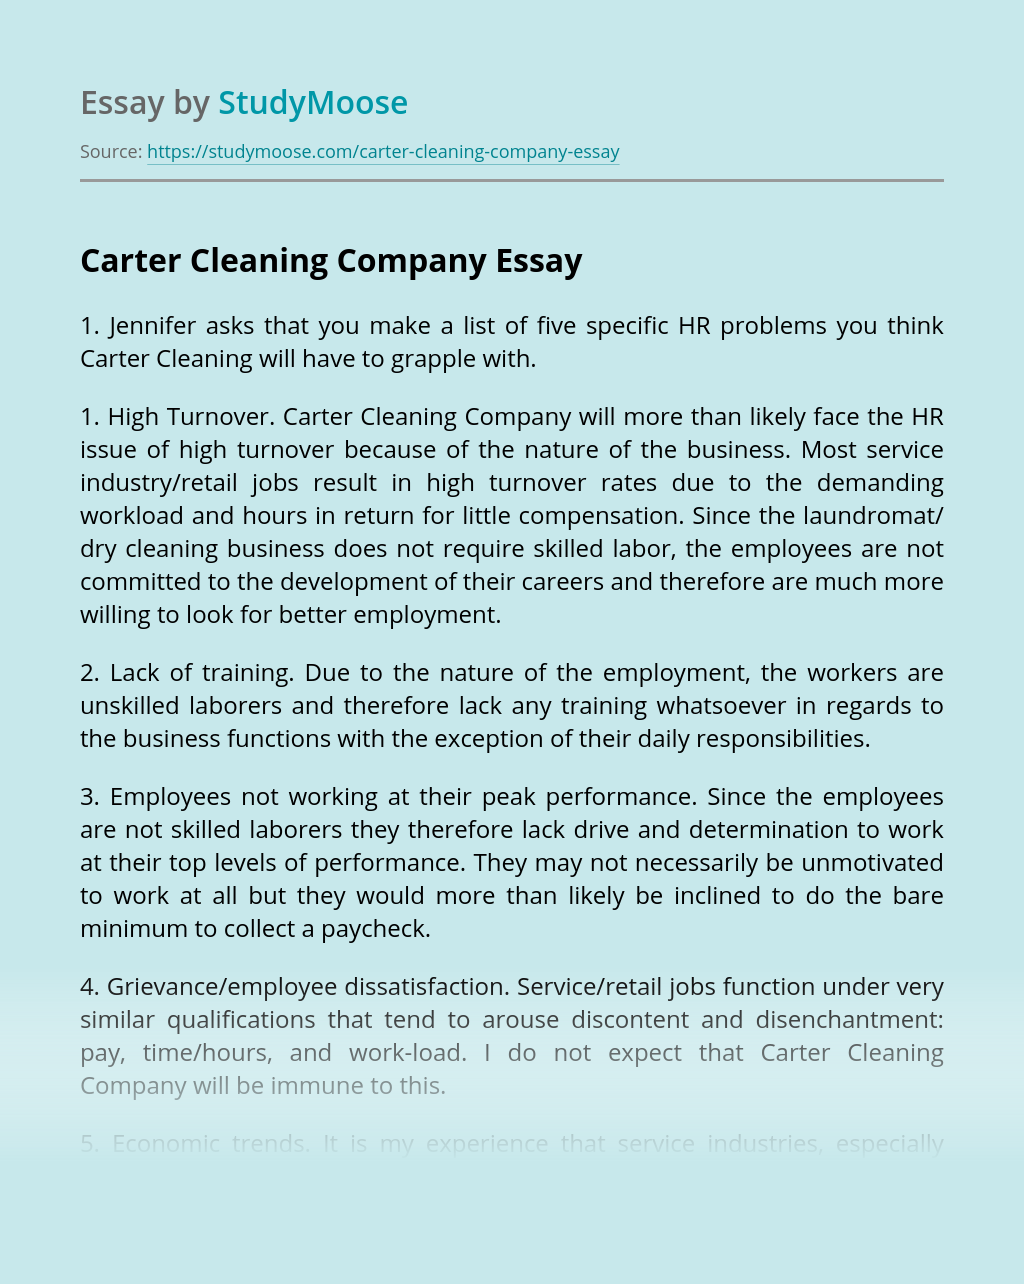 Carter Cleaning Company